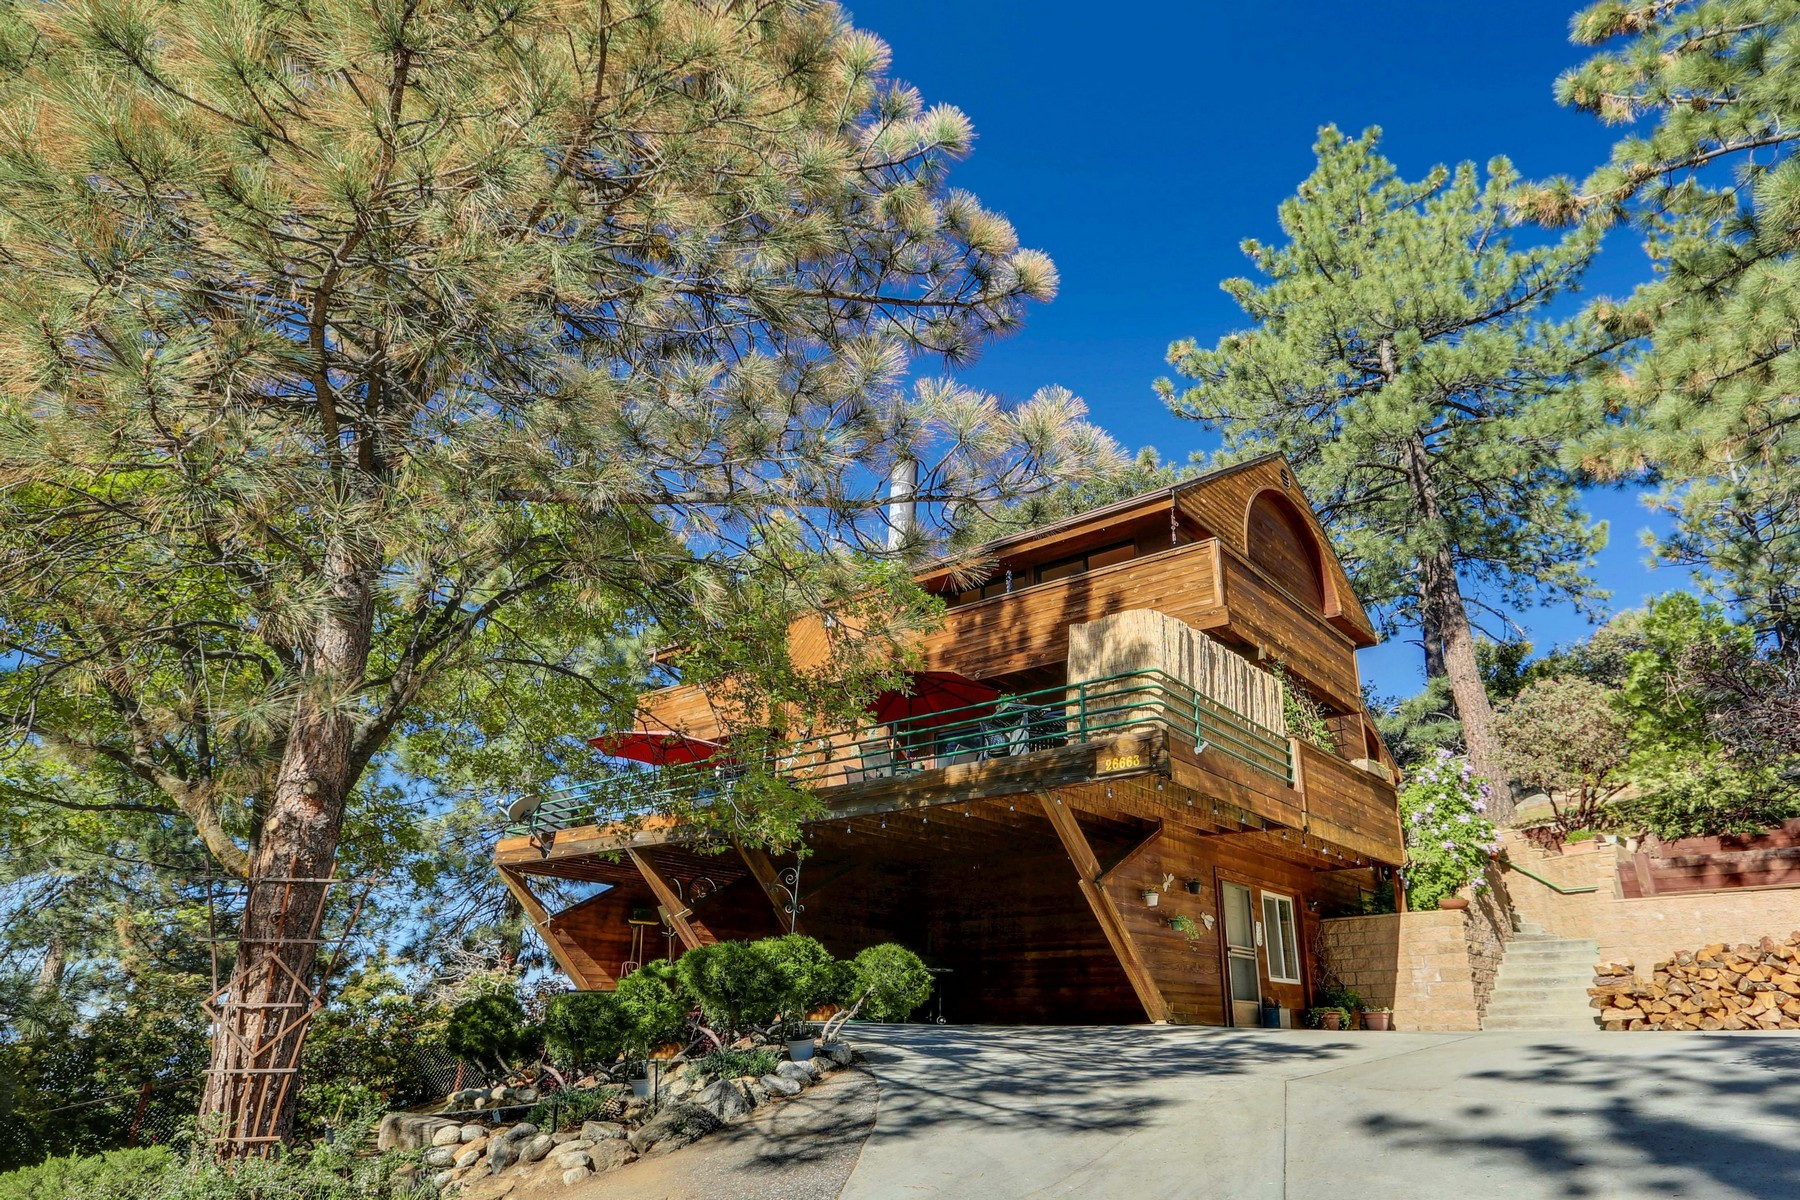 Single Family Home for Sale at 26663 Hide A Lane Idyllwild, California 92549 United States